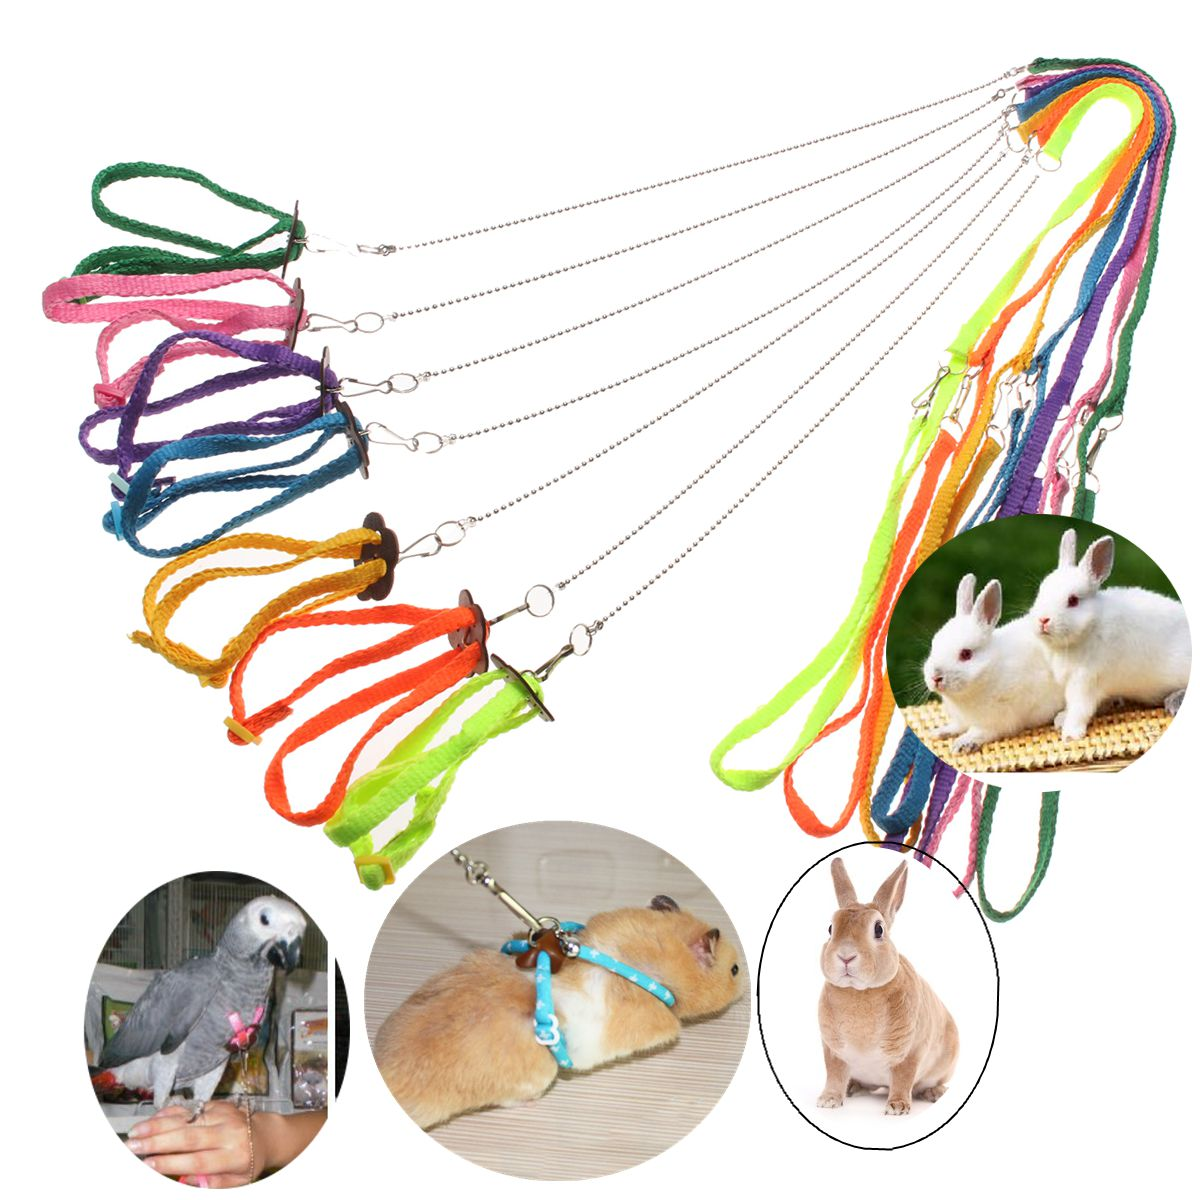 Adjustable-Ferret-Harness-Baby-Animal-Rabbit-Hamster-Rat-Mouse-Leash-Lead-Bell Adjustable-Ferret-H